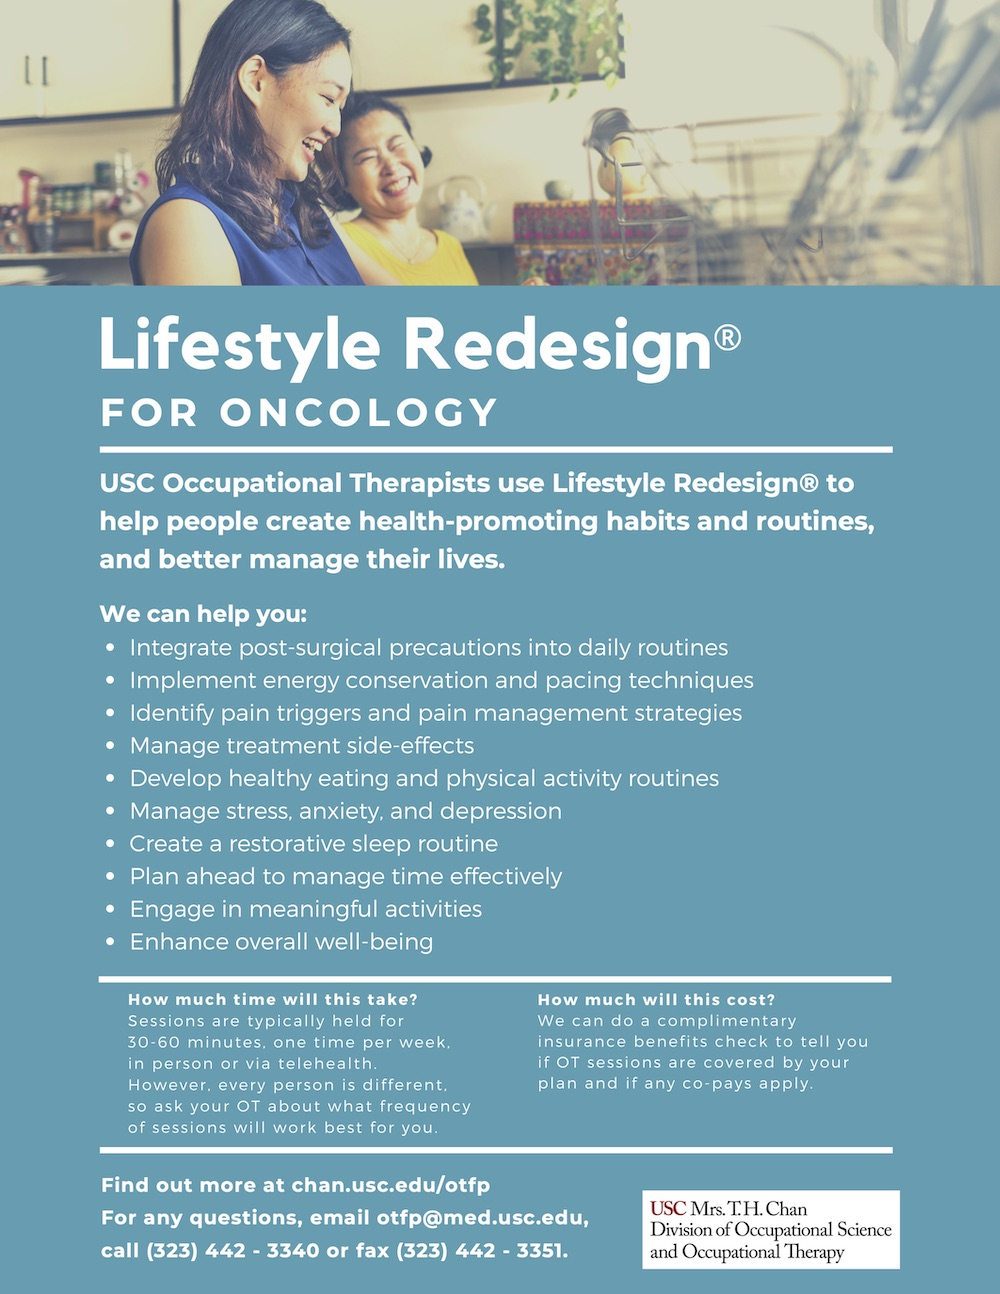 Lifestyle Redesign for Oncology